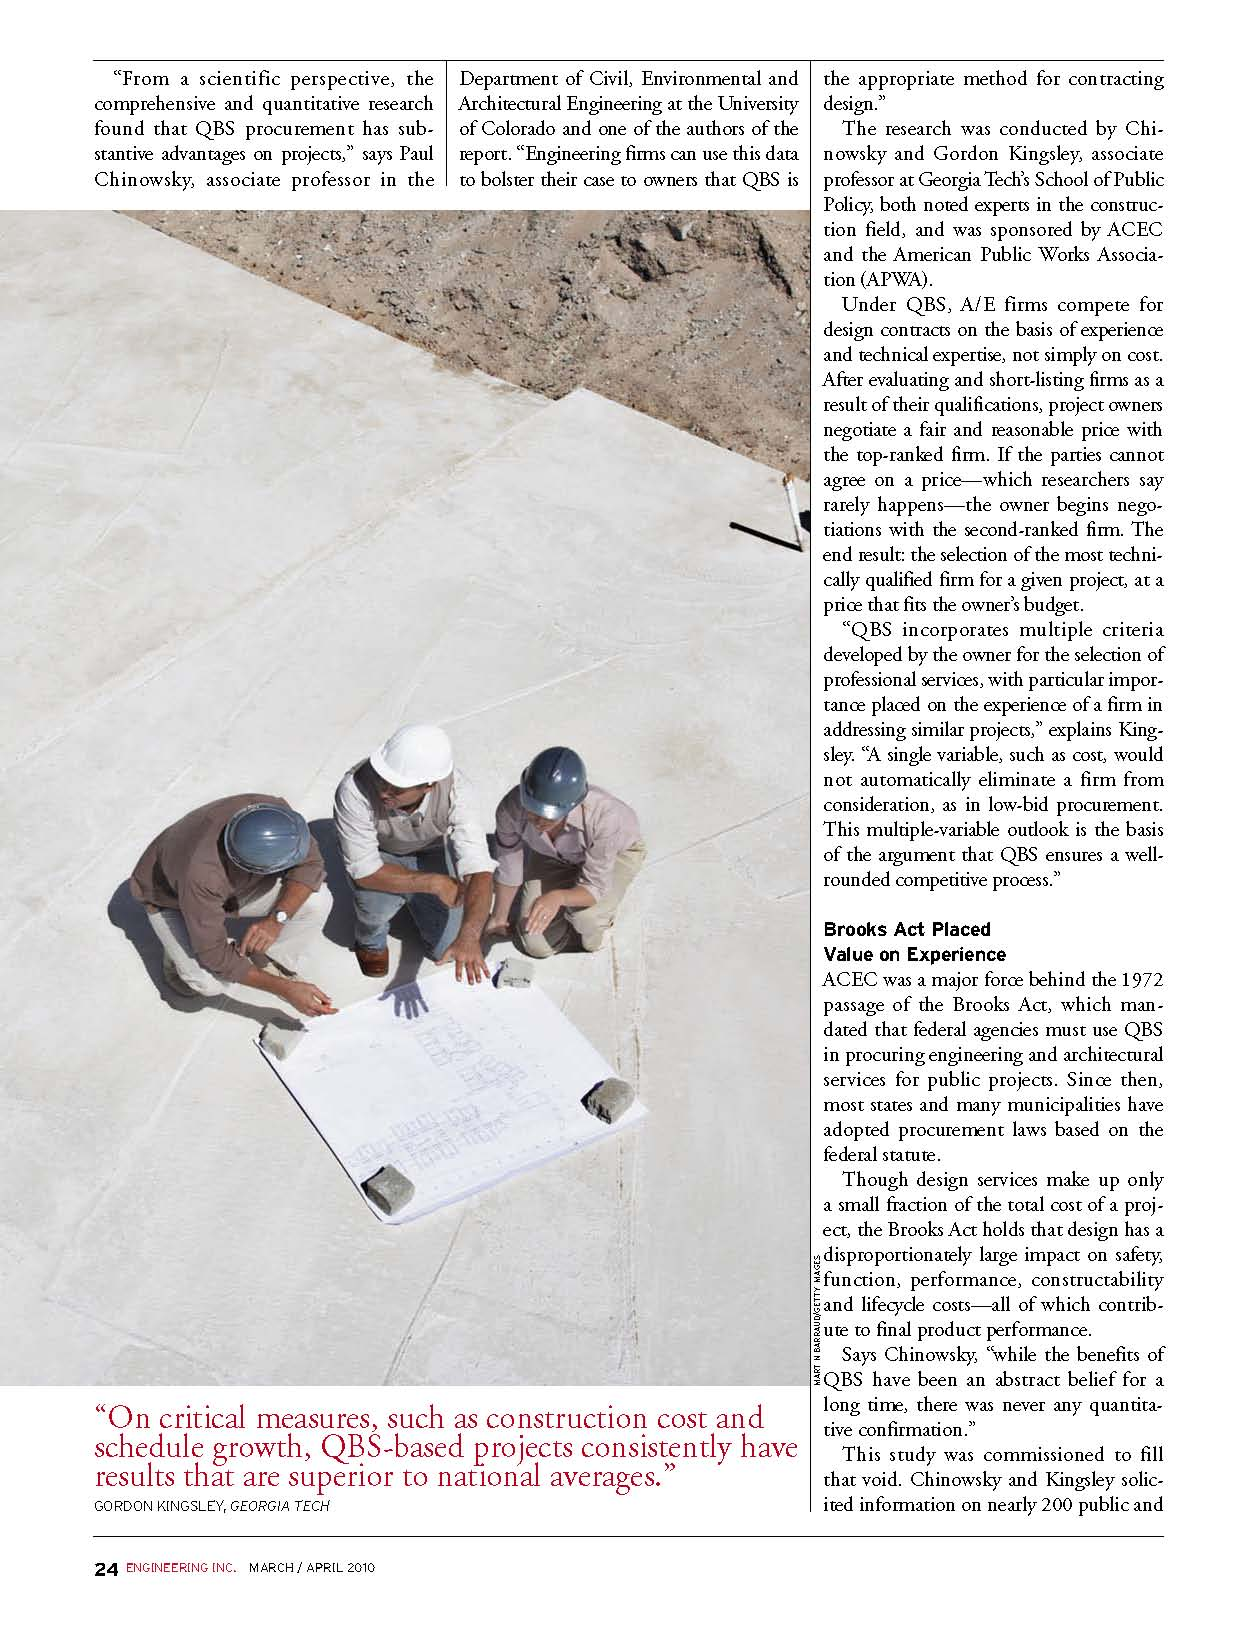 engineering inc_qbs article_marchapril 2010_page_2